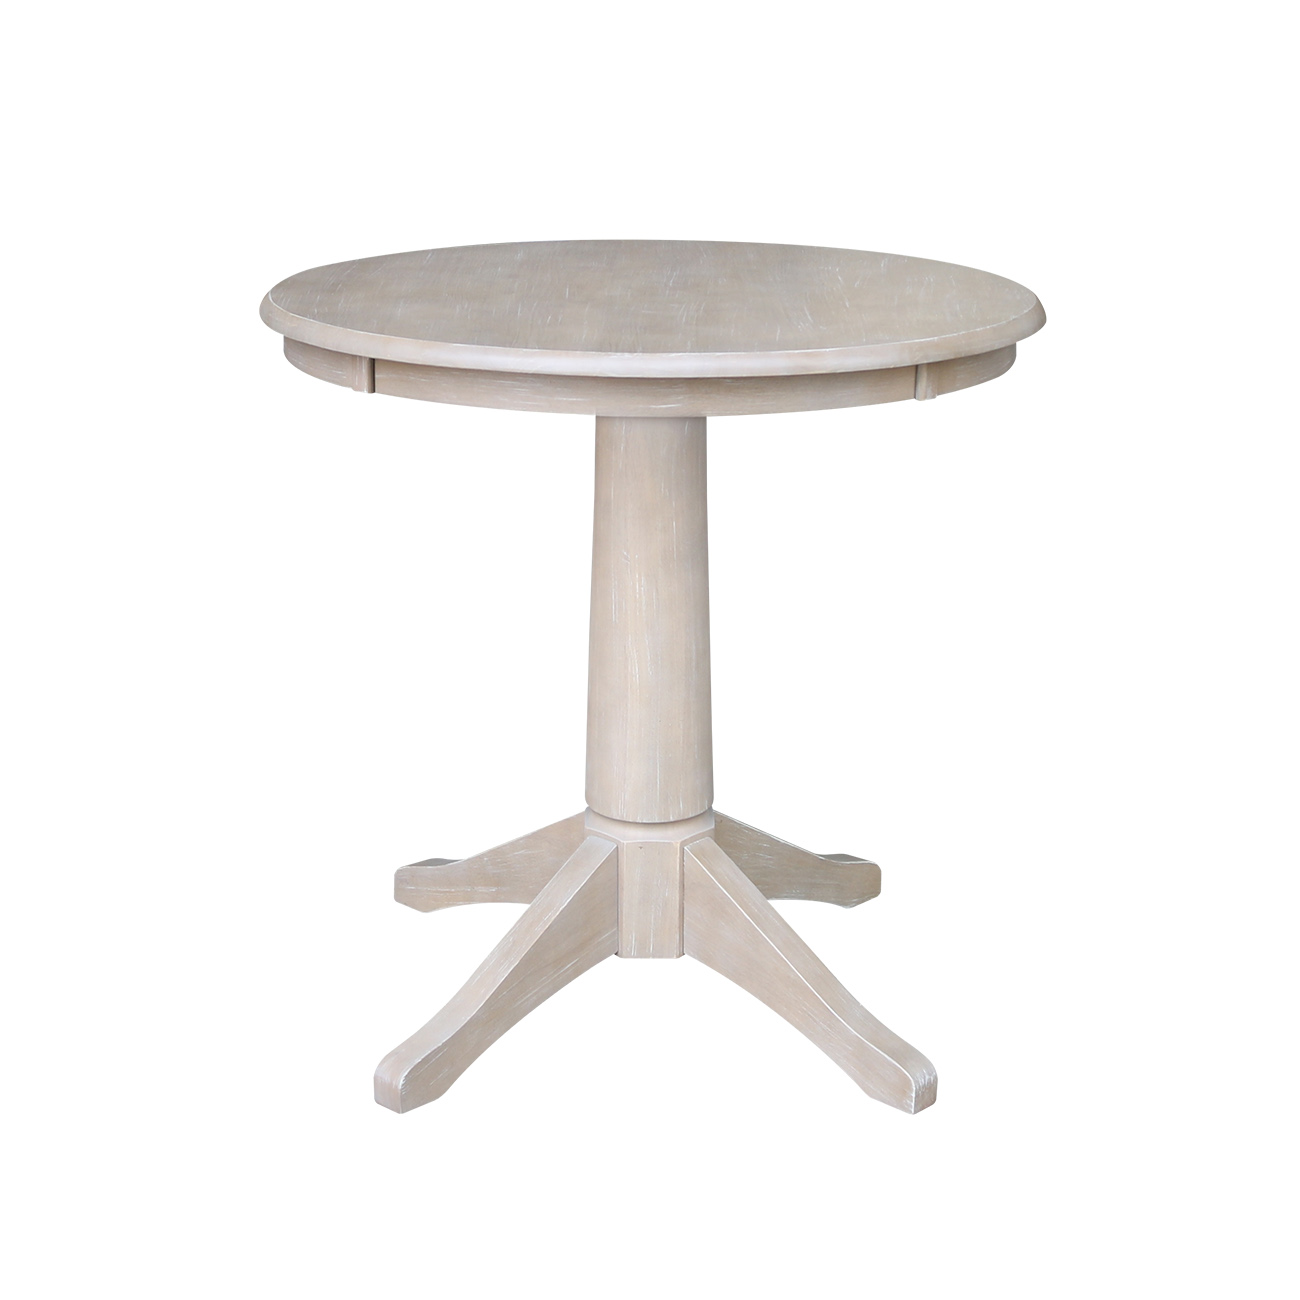 30 X Solid Wood Round Pedestal Dining Table In Washed Gray Taupe